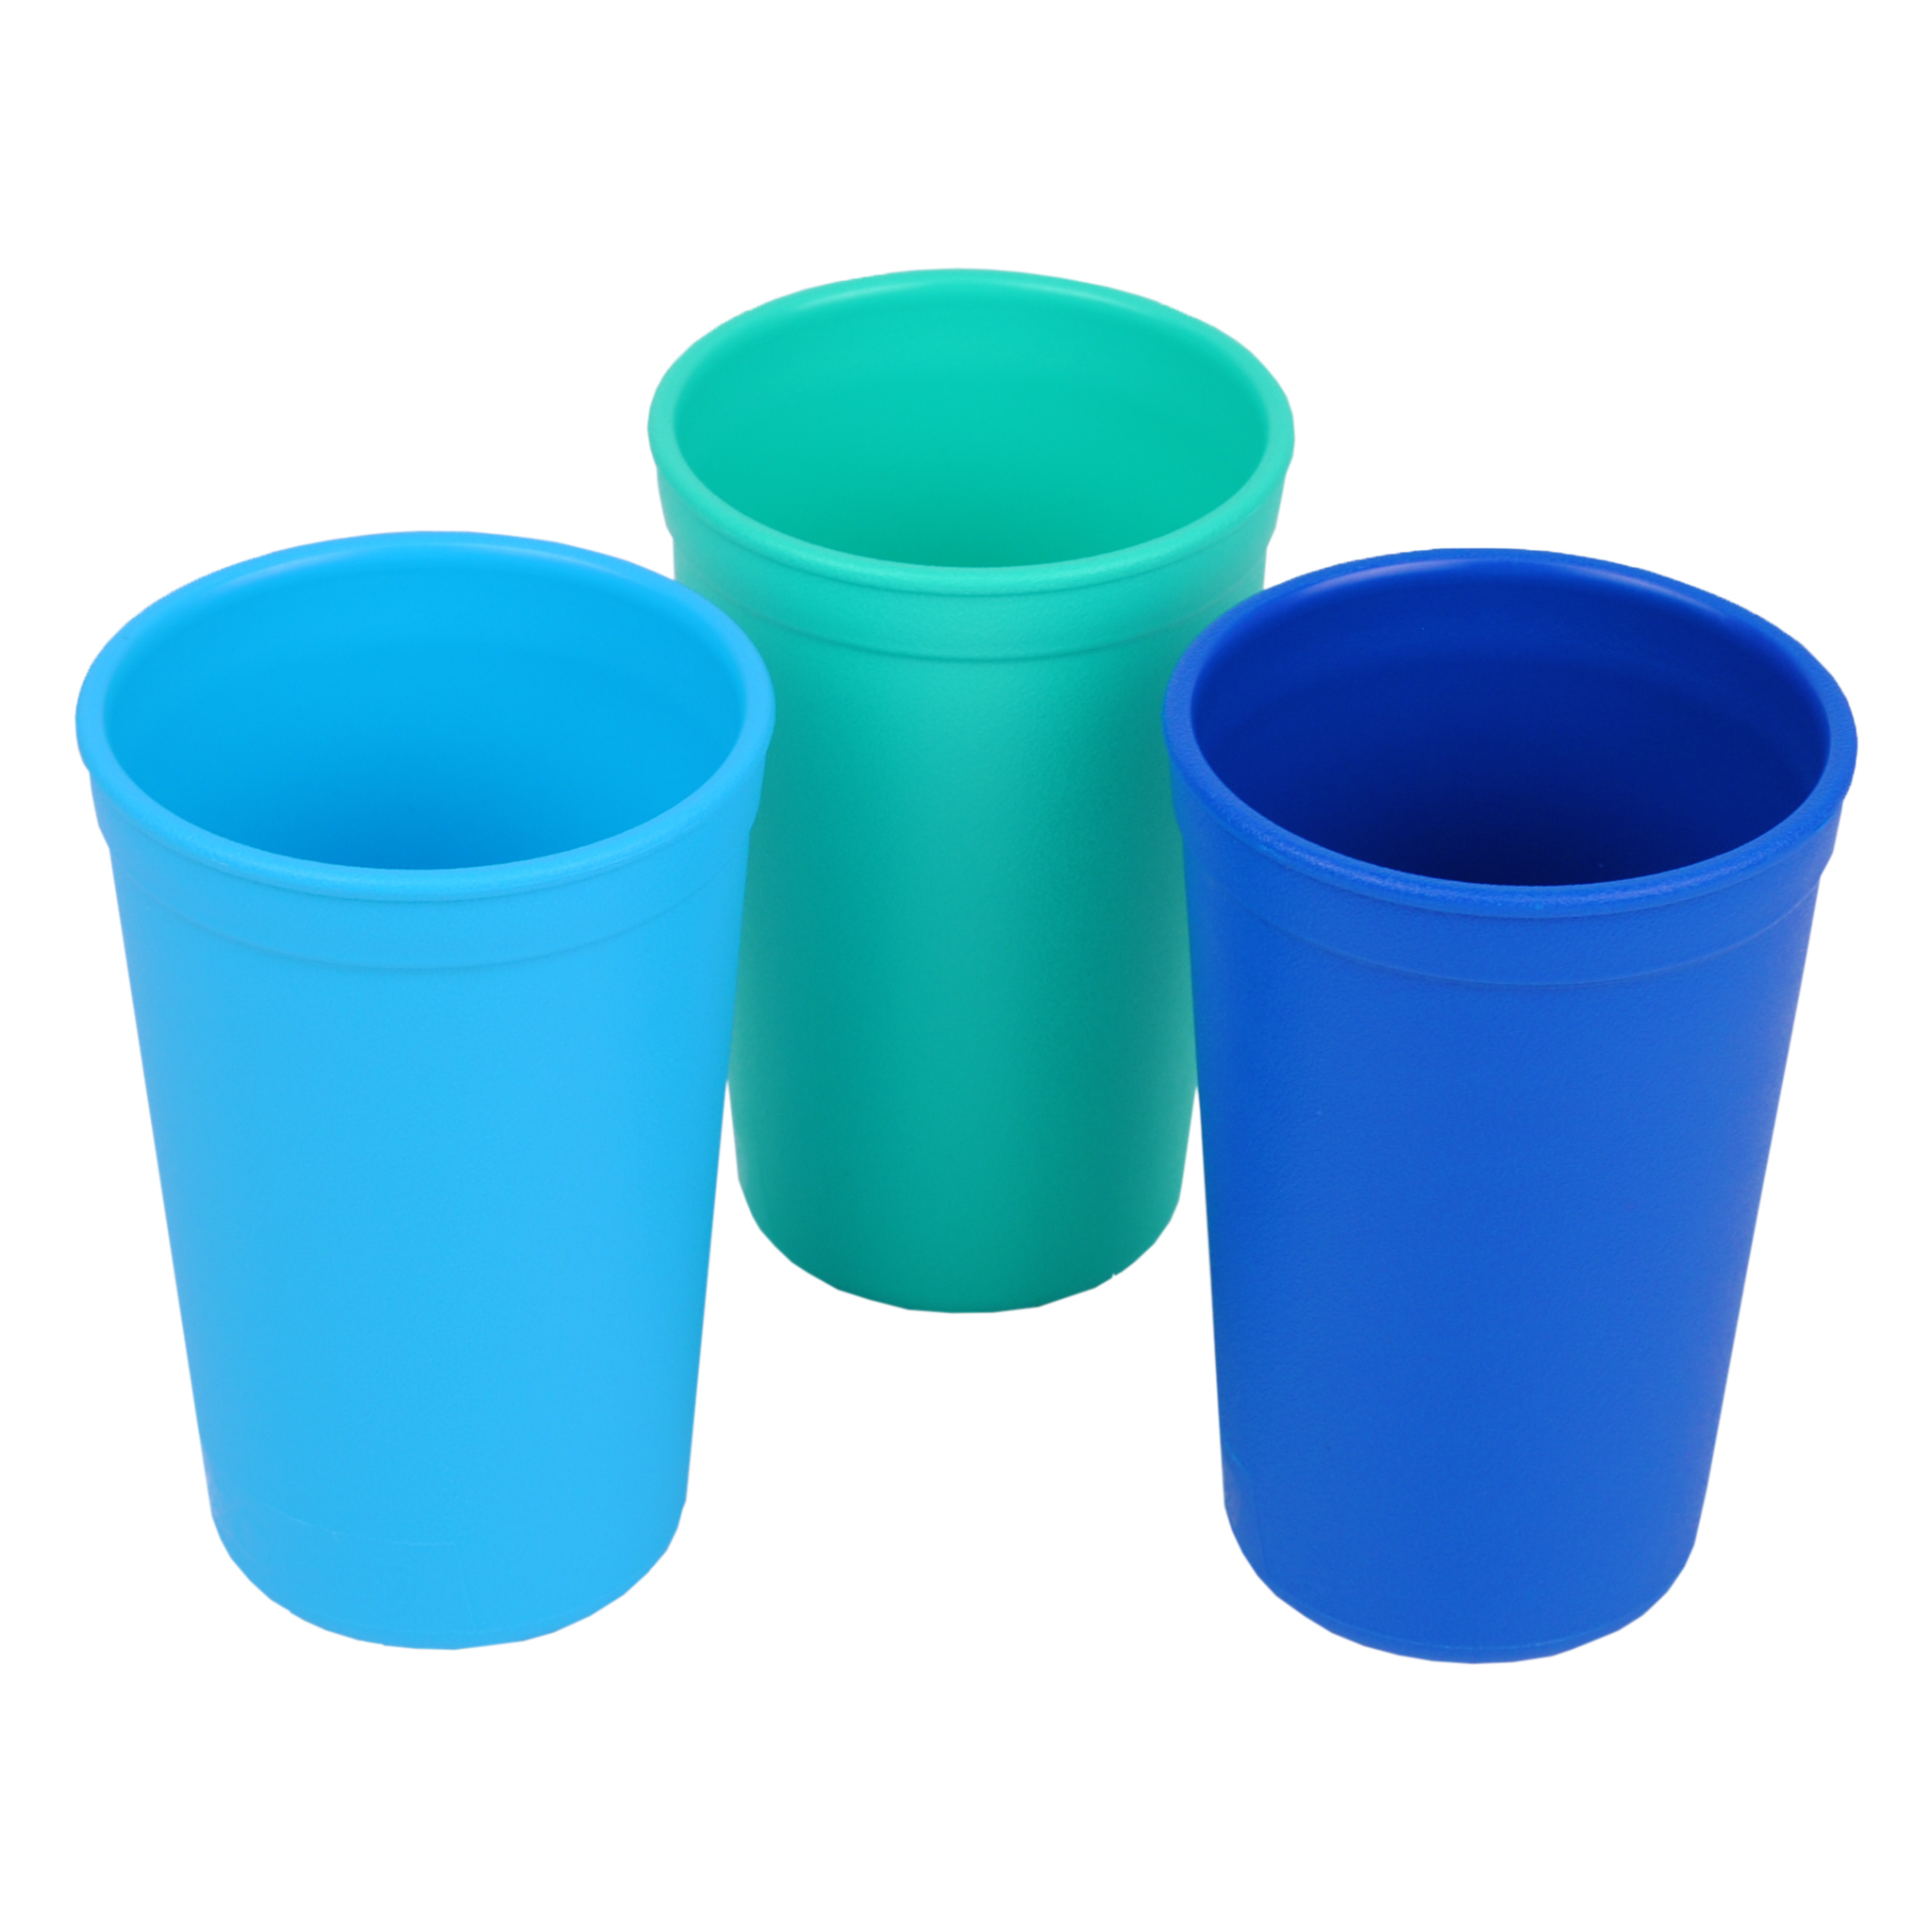 Re-Play Made in the USA 3pk Drinking Cups for Baby, Toddler and Children - Sky Blue, Aqua, Navy (True Blue) Durable, Dependable and Tough Toddler Sippy Cups!